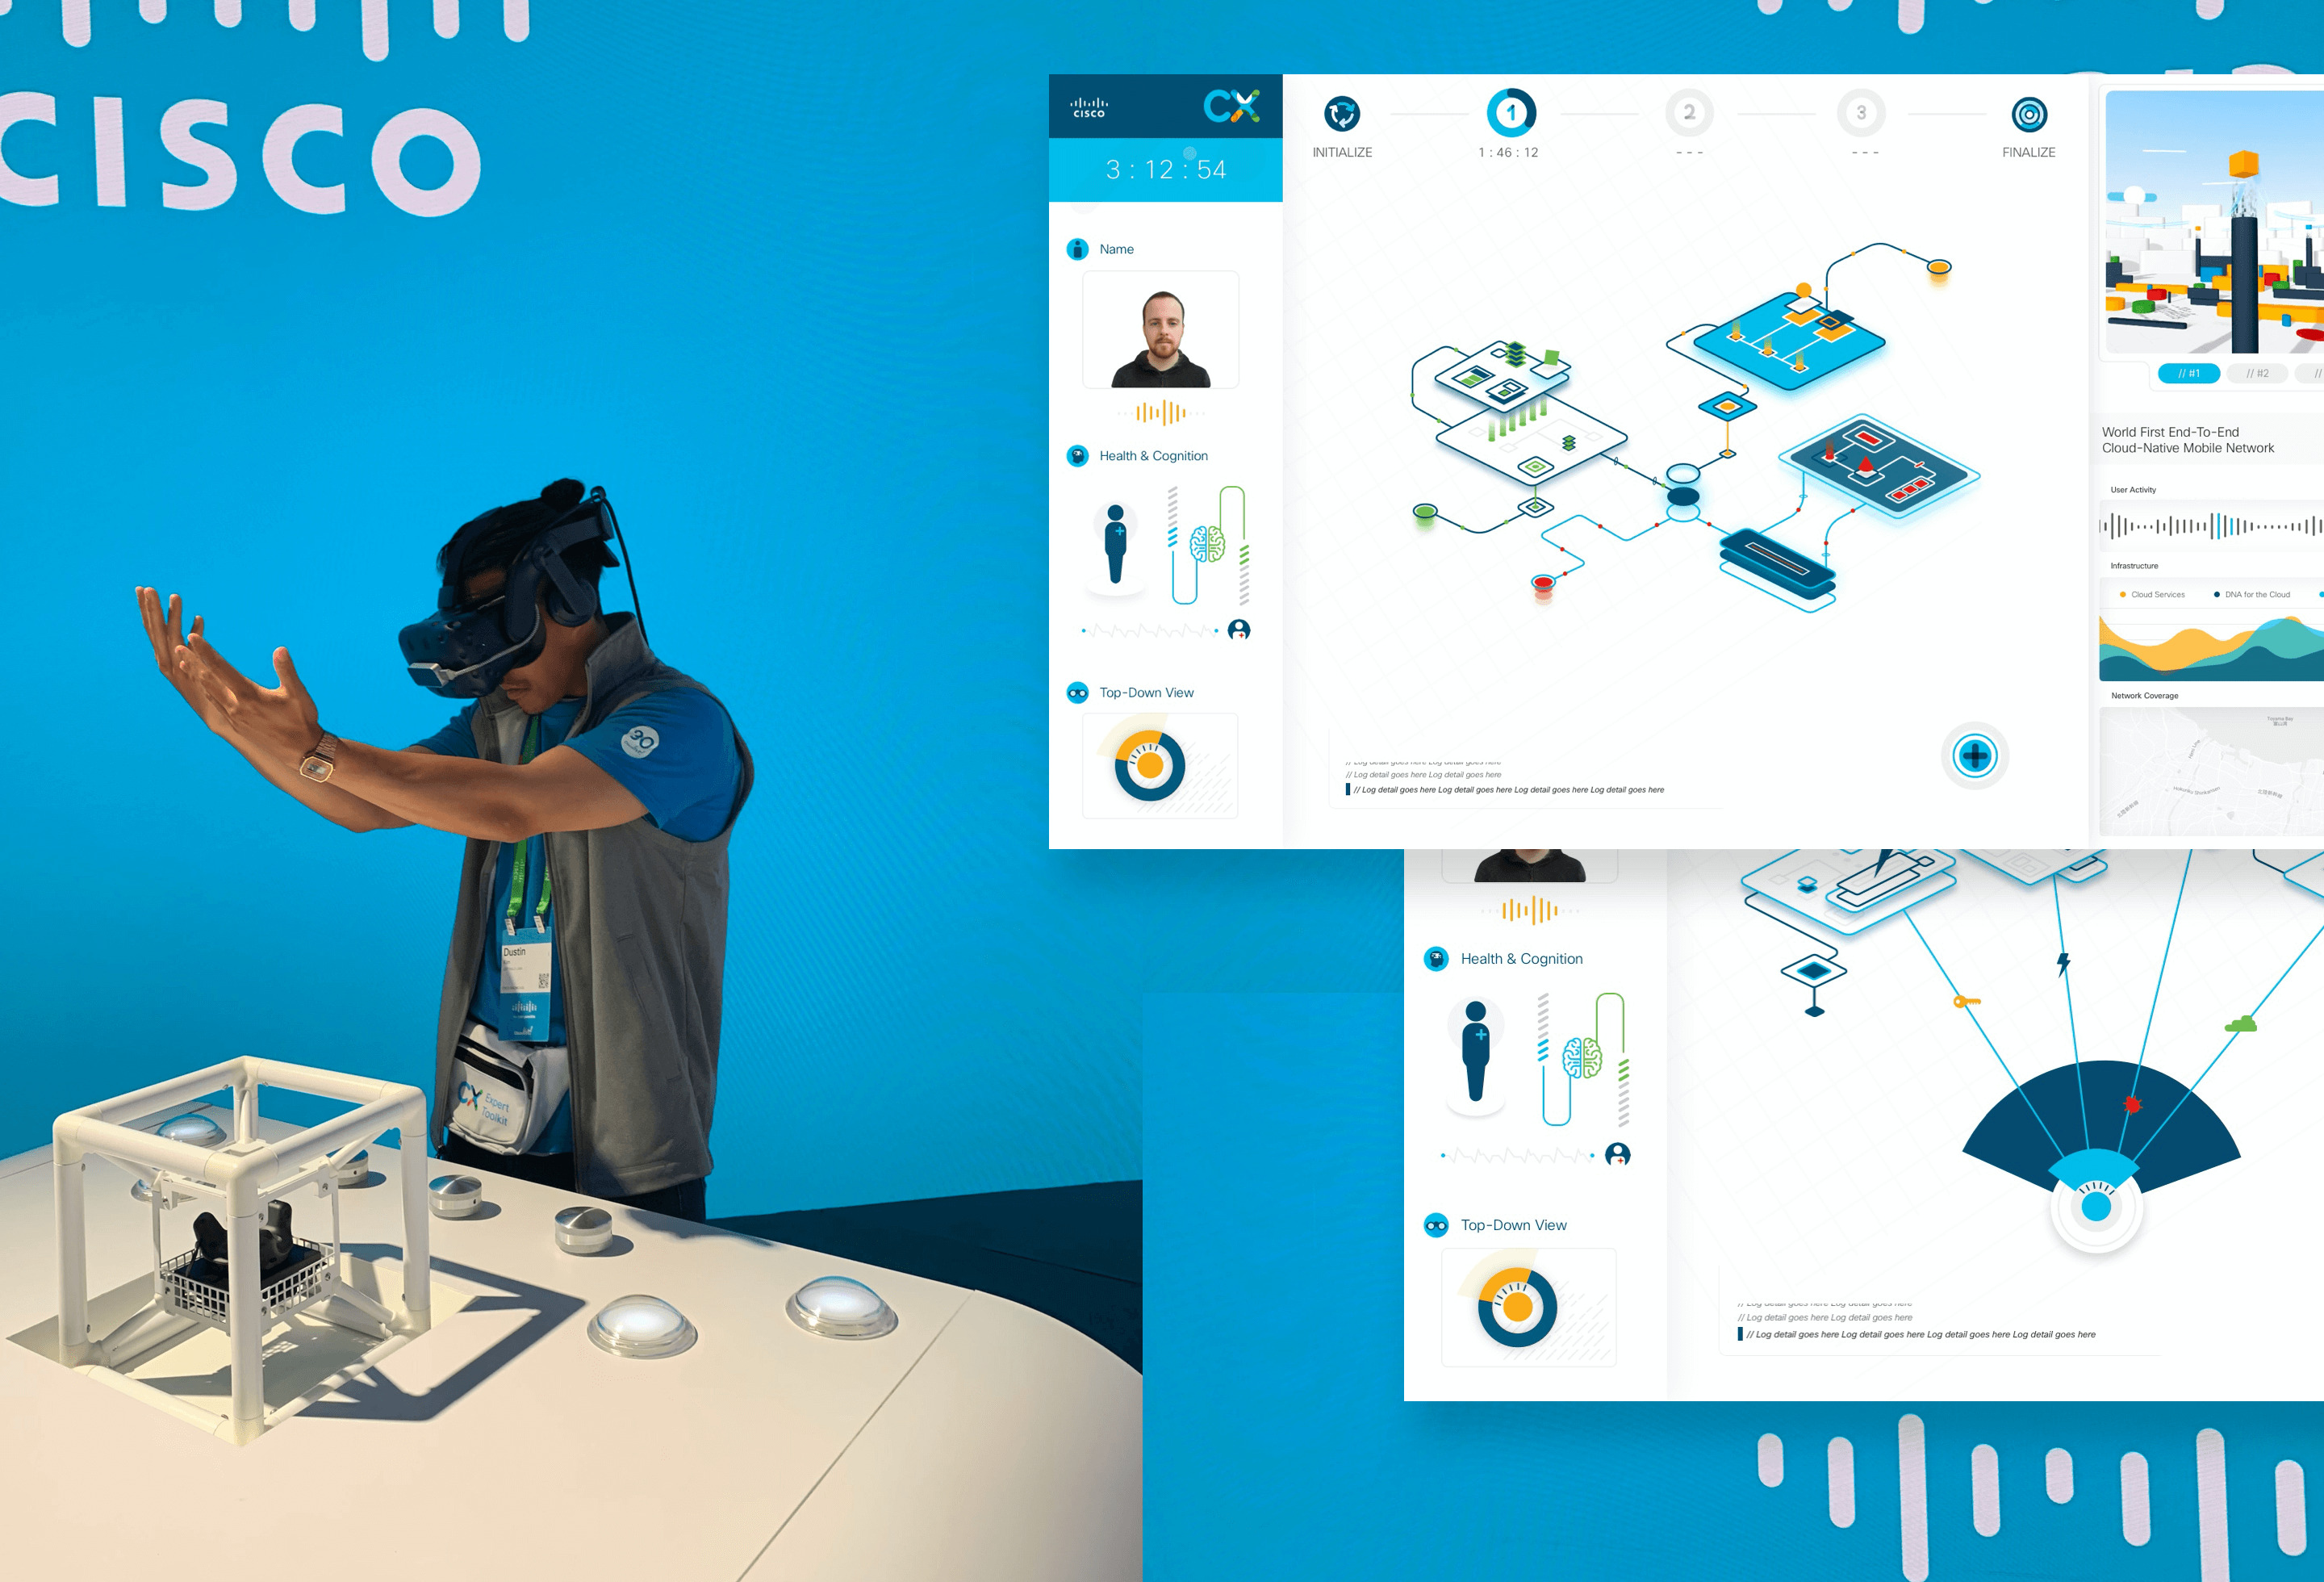 A participant in the experience alongside some UI Images